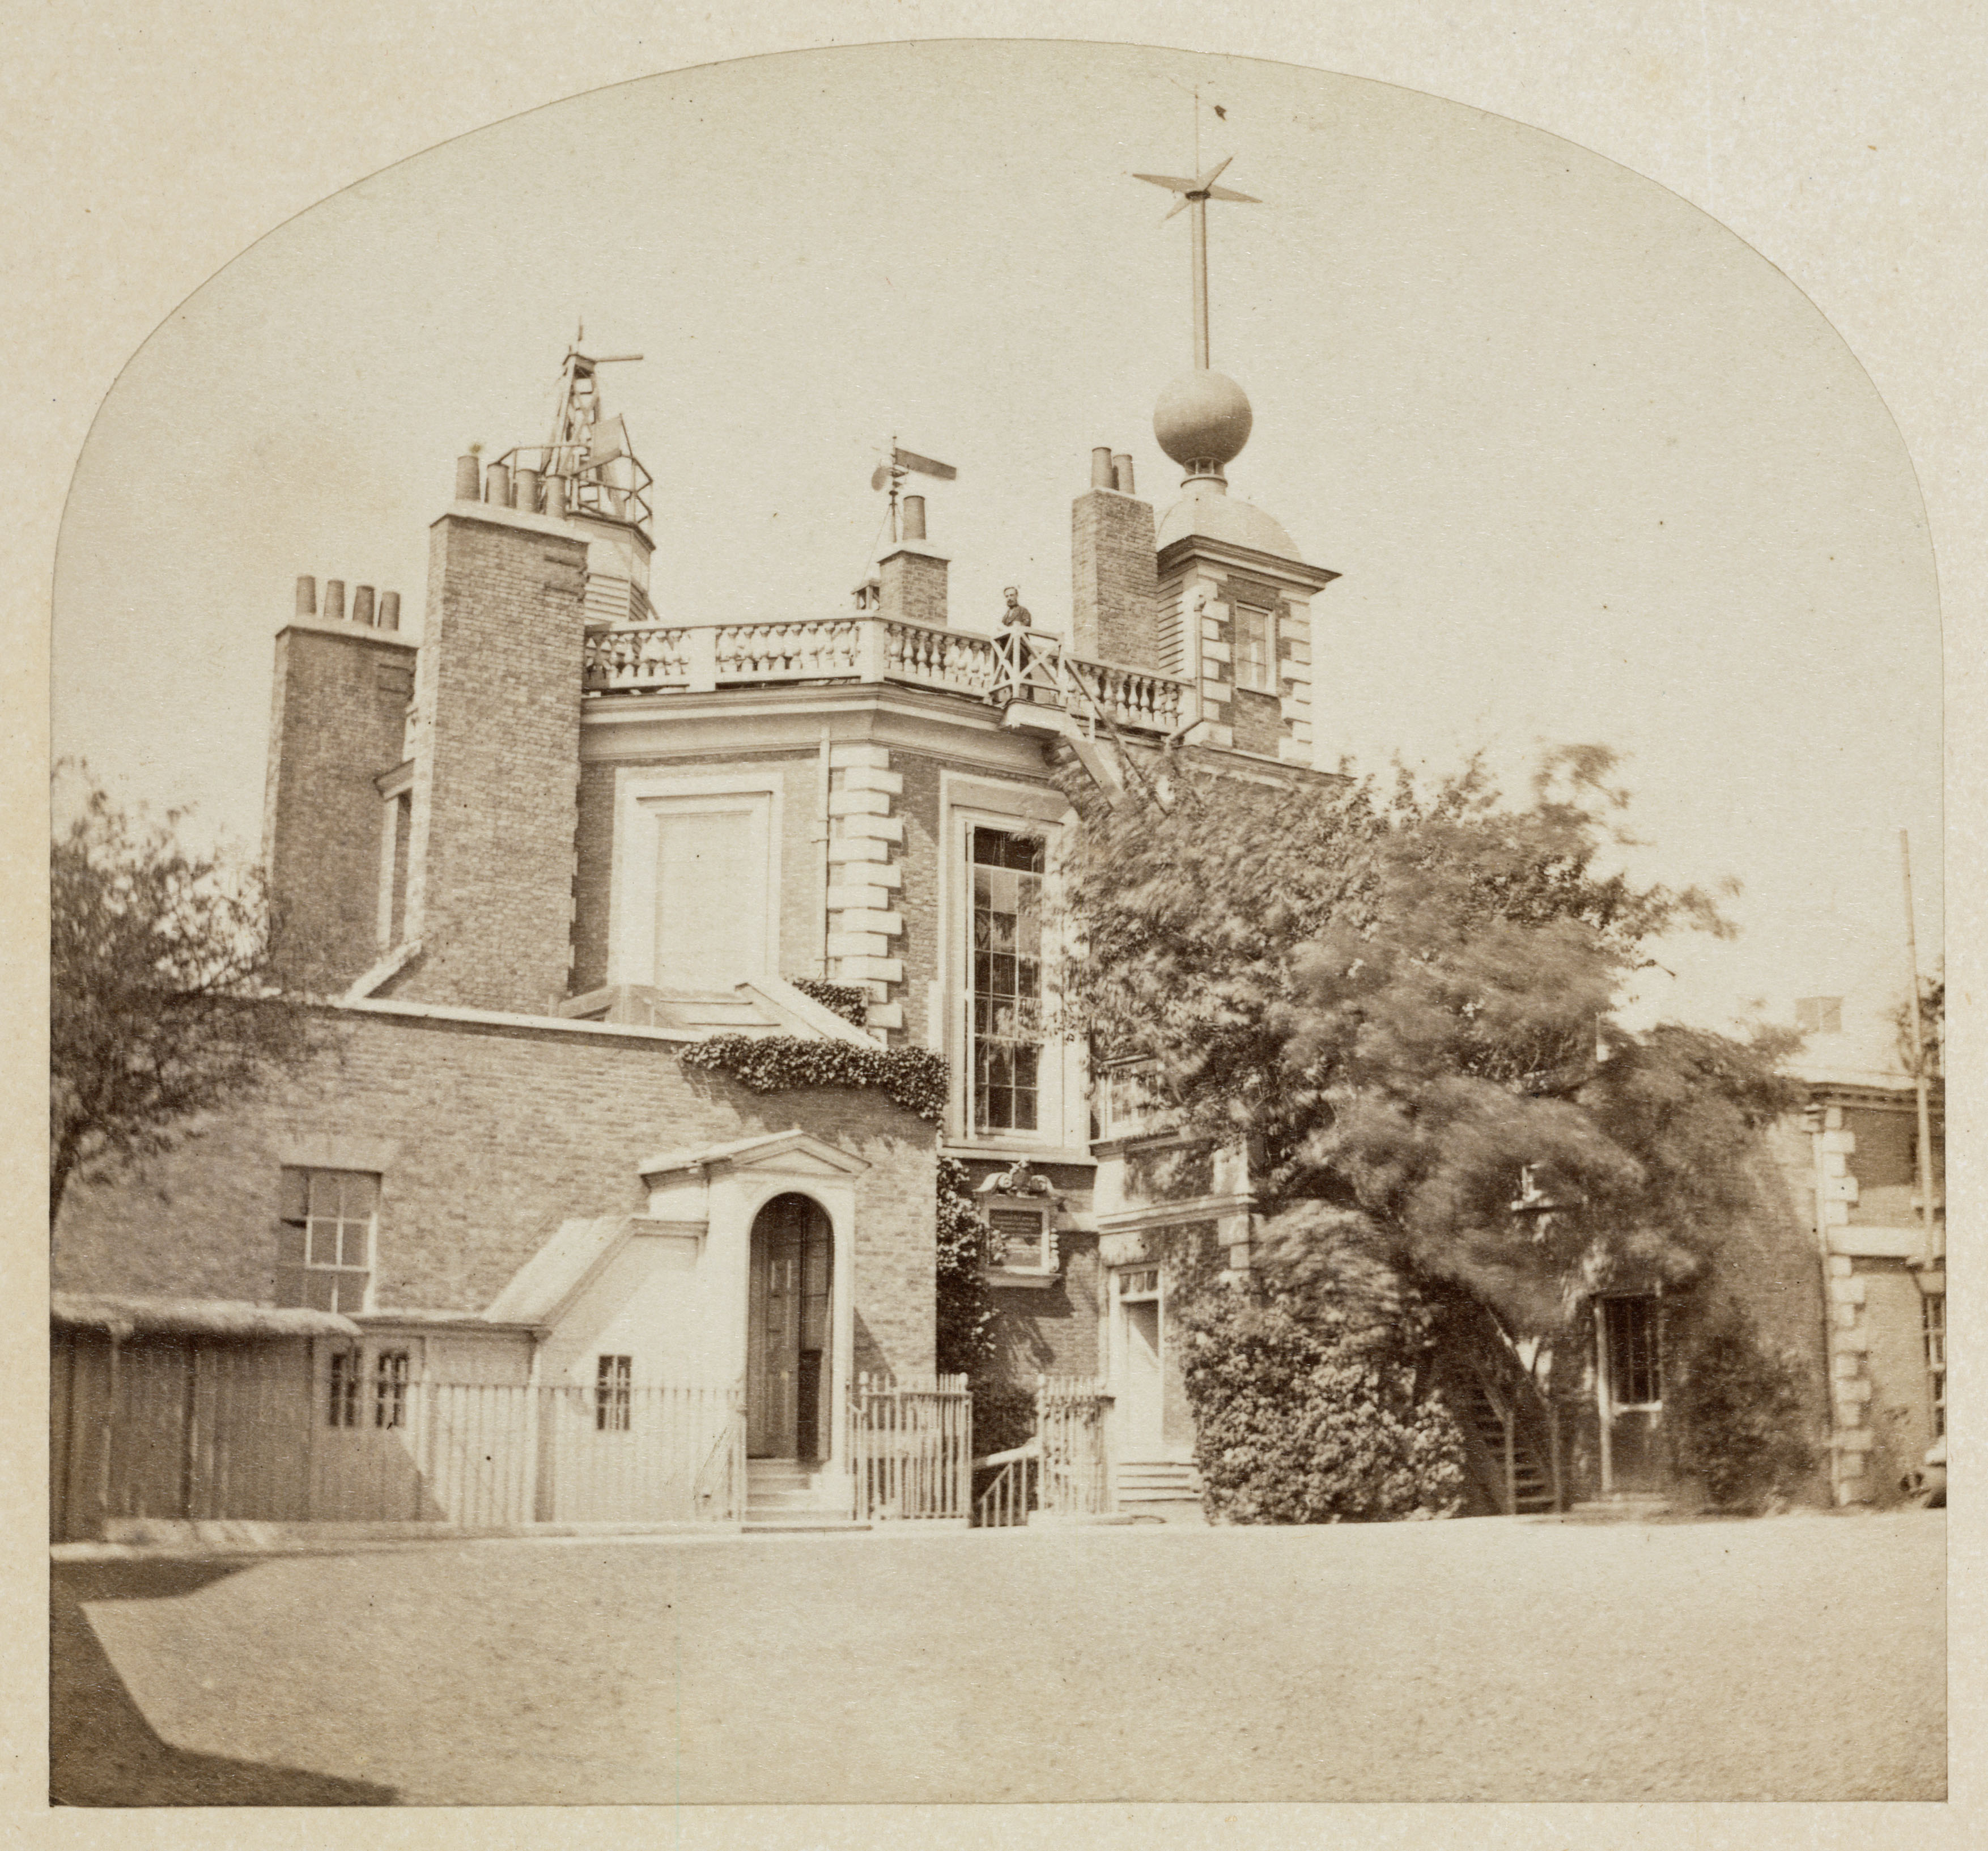 A photograph of the Flamsteed House at the Royal Observatory, Greenwich in the mid nineteenth century. On top shows the time ball, a device that was used to help sailors reset their chronometers from ships in the nearby London docks. Five minutes in advance the ball was raised to the top of its pole and was dropped at the exact moment of 1 pm. The practice is still continued to this day despite the observatory now forming part of the National Maritime Museum. (Credit: SSPL/Getty Images)